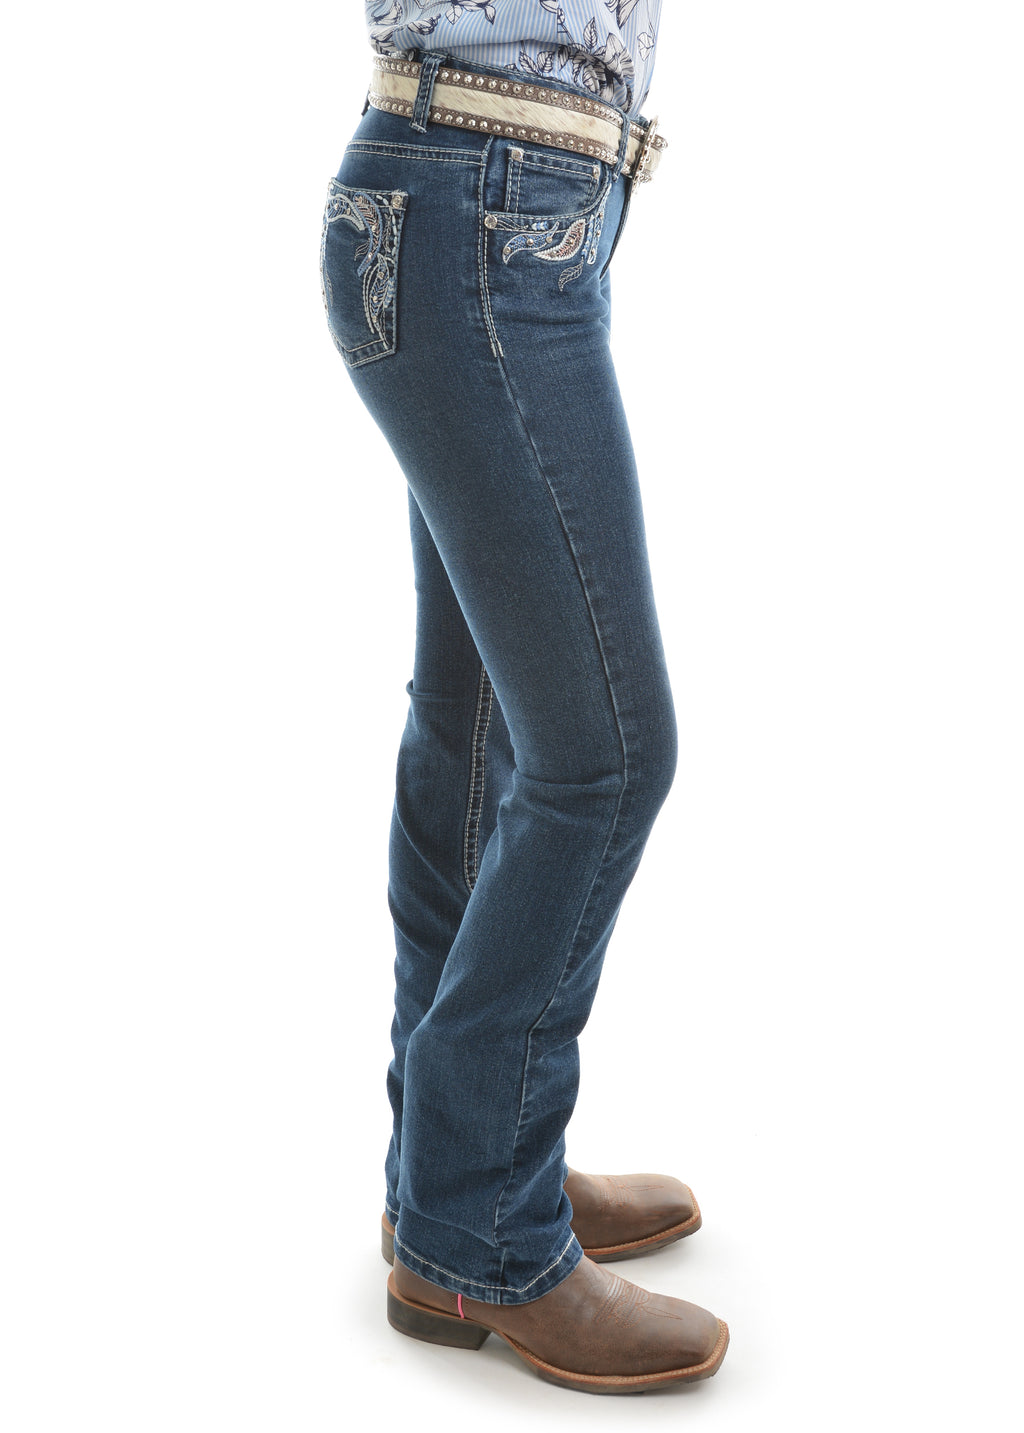 Pure Western | Womens | Jeans | Waist Low | Bootcut | 34"